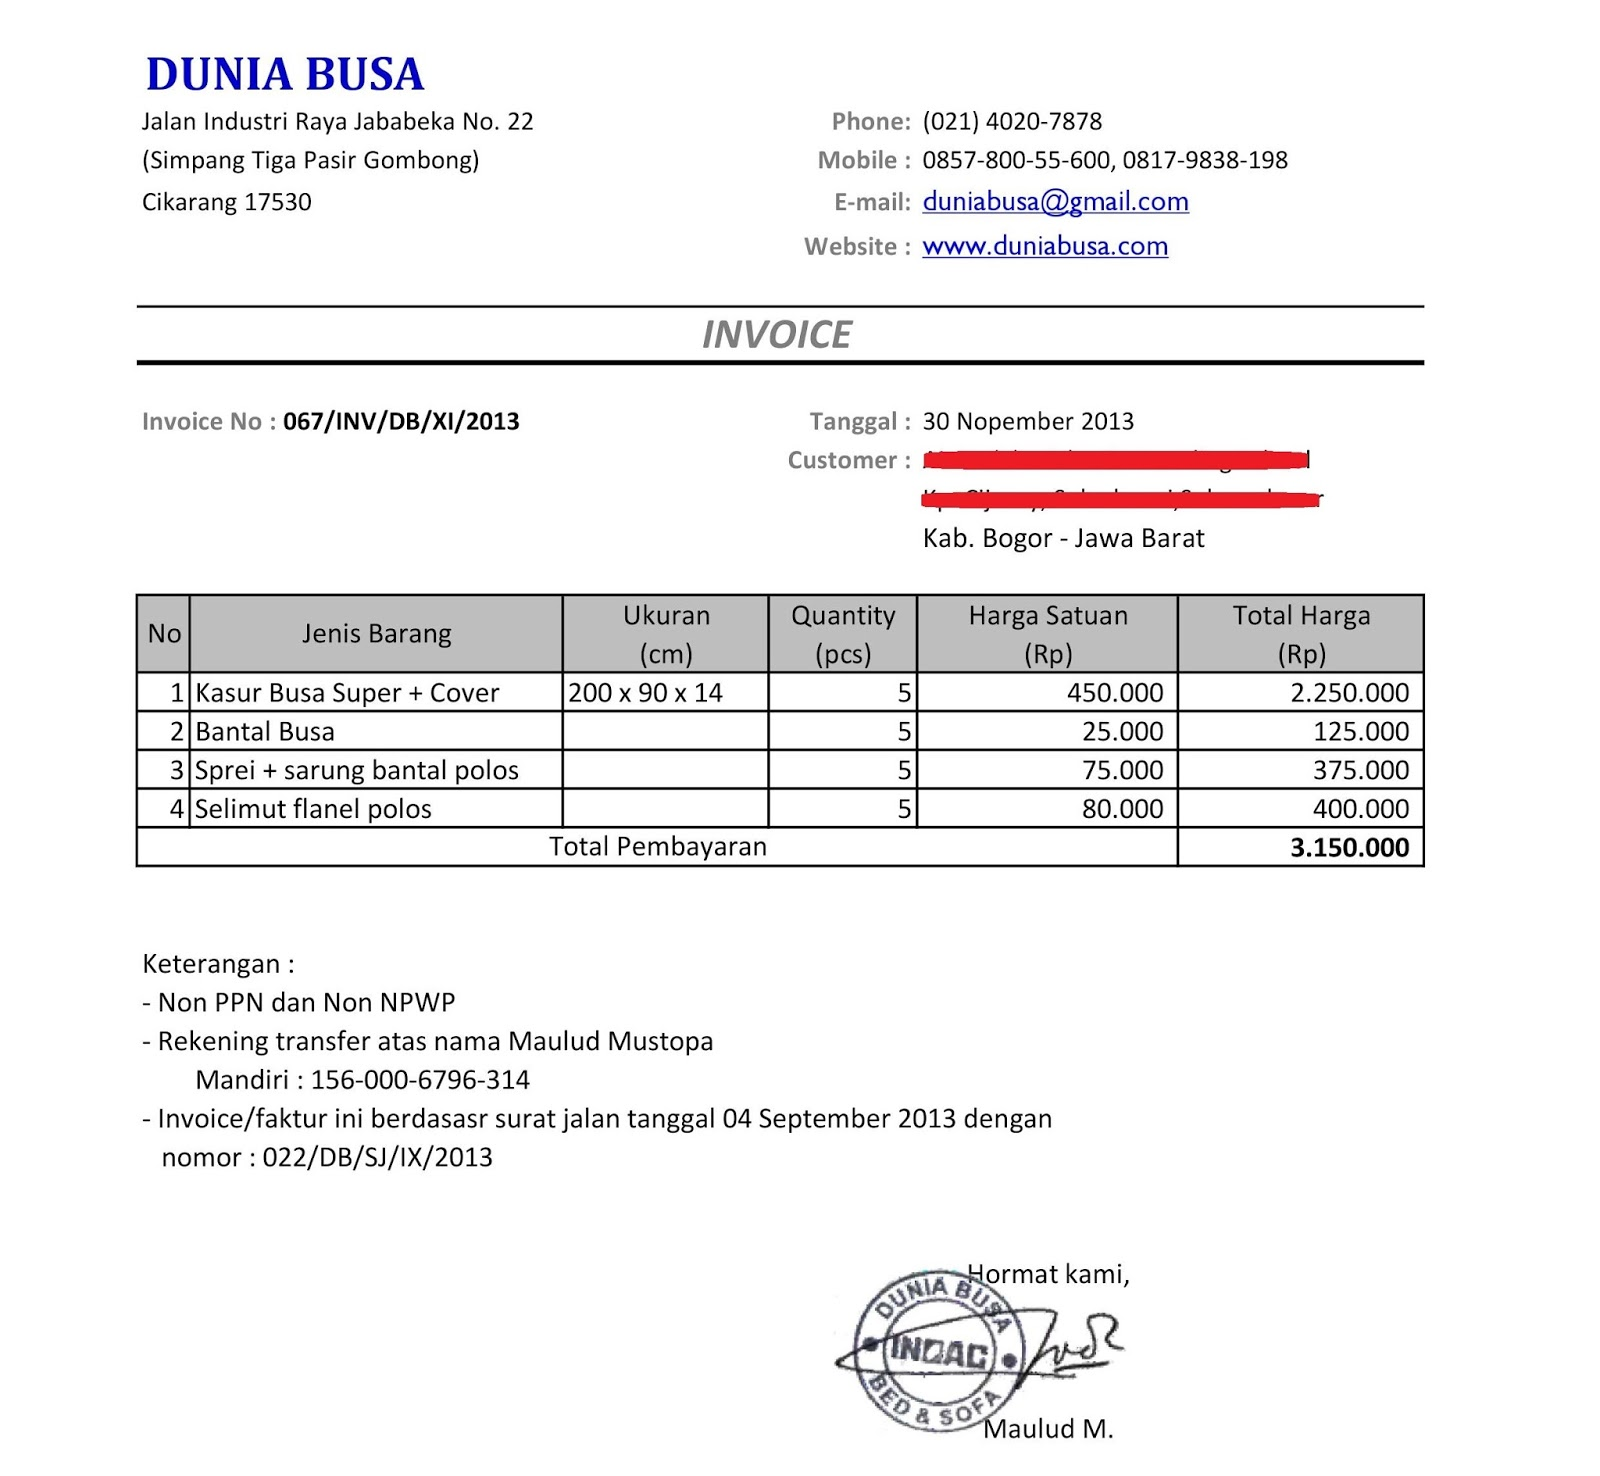 Laceychabertus  Remarkable Free Invoice Online  Create Invoice Online  Invoice Template  With Goodlooking Contoh Format Invoice Atau Surat Tagihan  Brankas Arsip  Free Invoice Online With Beauteous Microsoft Office Invoice Also How To Fill Out Invoice In Addition Create Invoice In Excel And Contract Invoice Template As Well As How To Email An Invoice Additionally Invoicing Meaning From Sklepco With Laceychabertus  Goodlooking Free Invoice Online  Create Invoice Online  Invoice Template  With Beauteous Contoh Format Invoice Atau Surat Tagihan  Brankas Arsip  Free Invoice Online And Remarkable Microsoft Office Invoice Also How To Fill Out Invoice In Addition Create Invoice In Excel From Sklepco